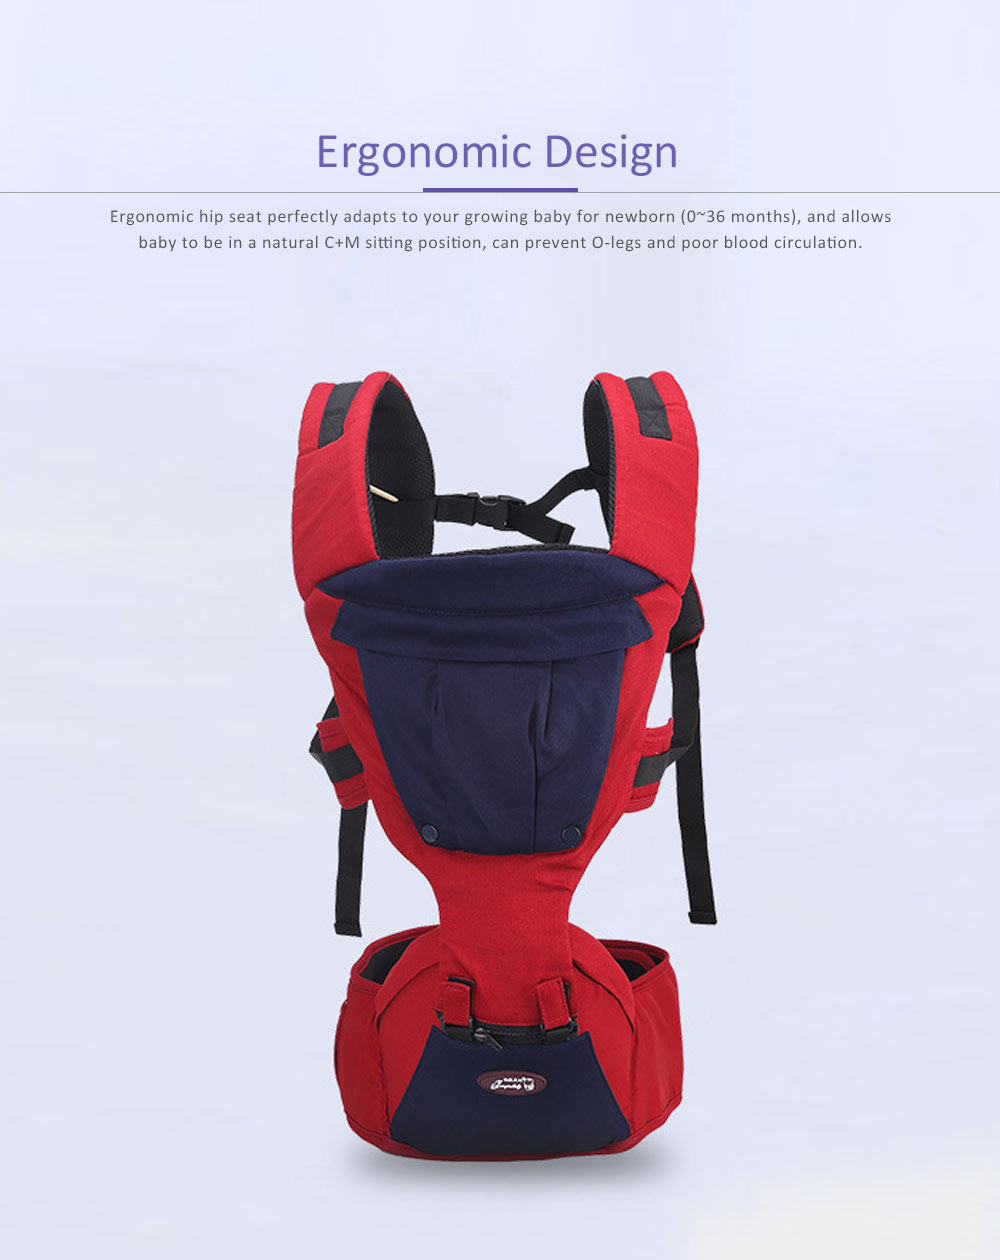 Multifunctional Baby Carrier with Breathable Hip Seat for Four Seasons General, Detachable Strap One Size Fits All -Adapt to Newborn and Infant 4